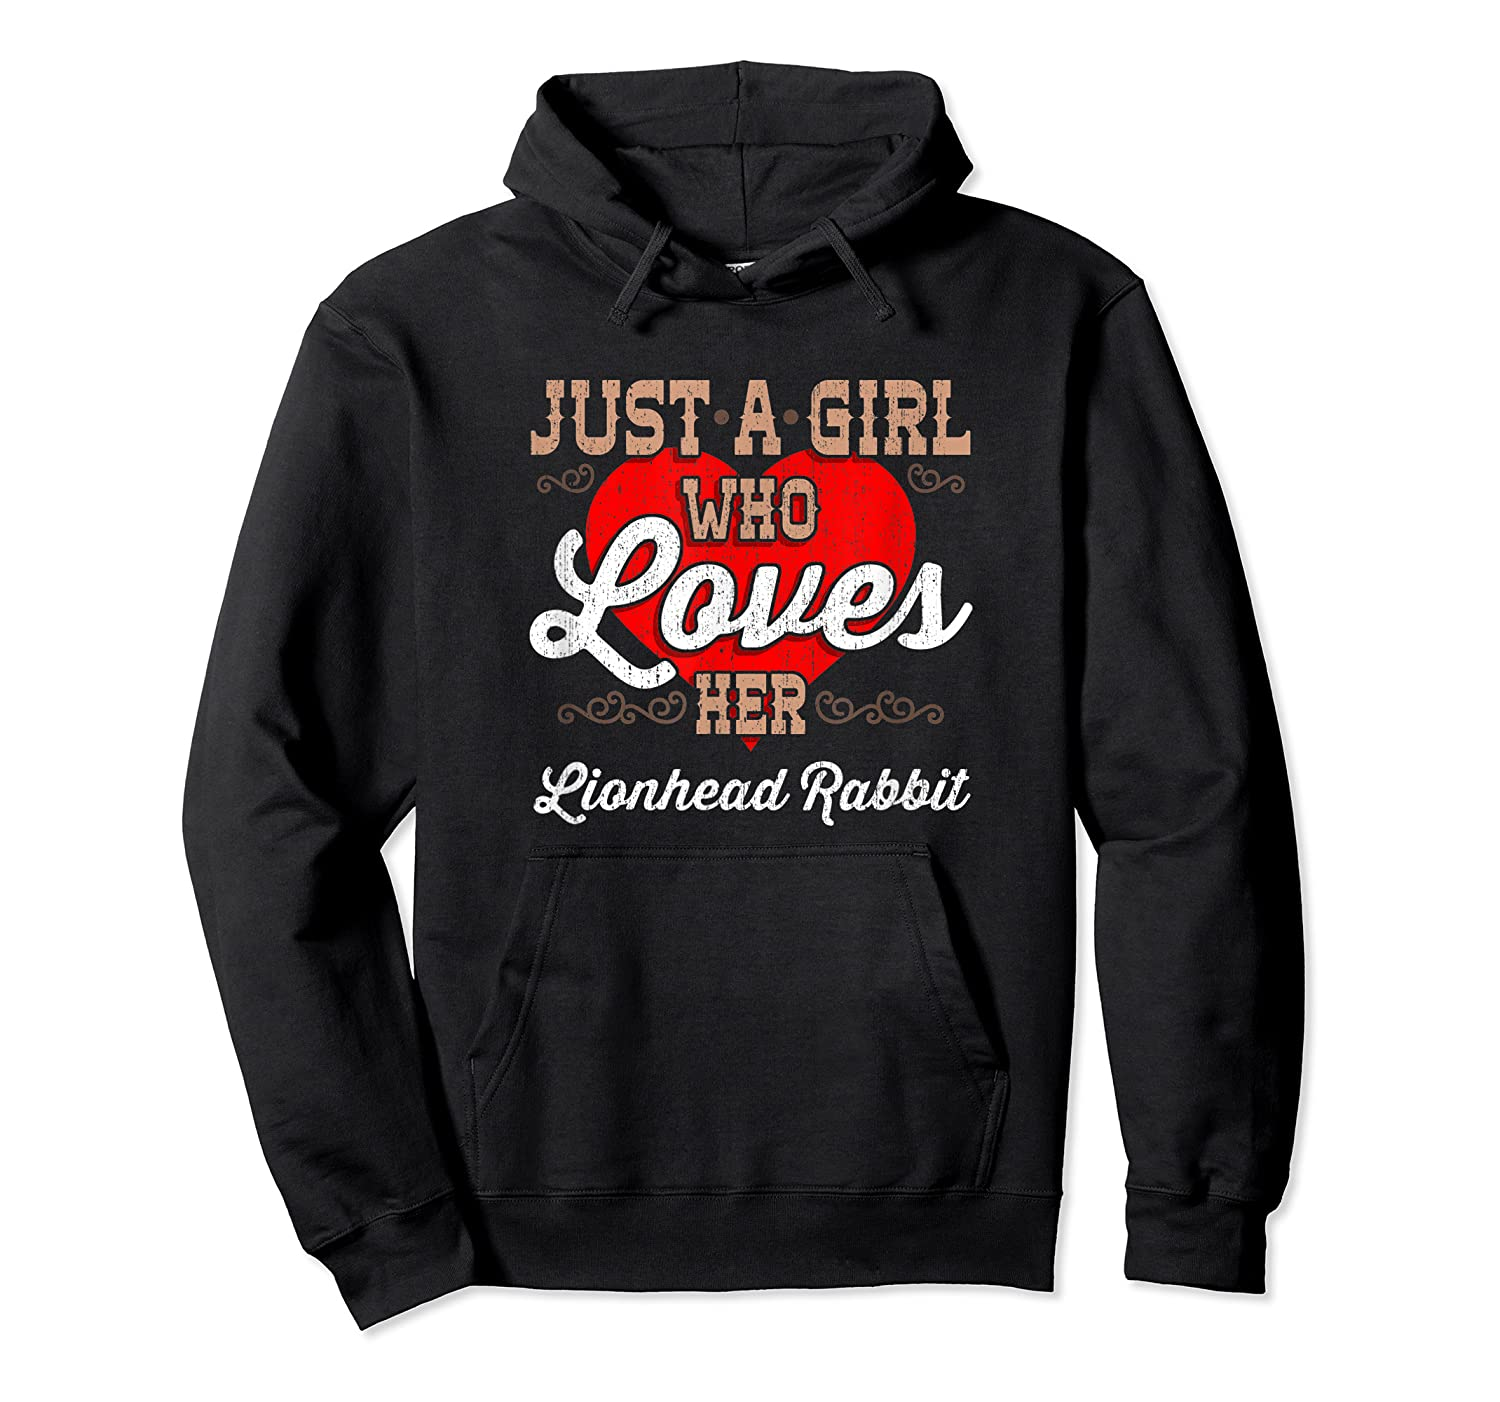 Just A Girl Who Loves Her Lionhead Rabbit Shirt For  Unisex Pullover Hoodie